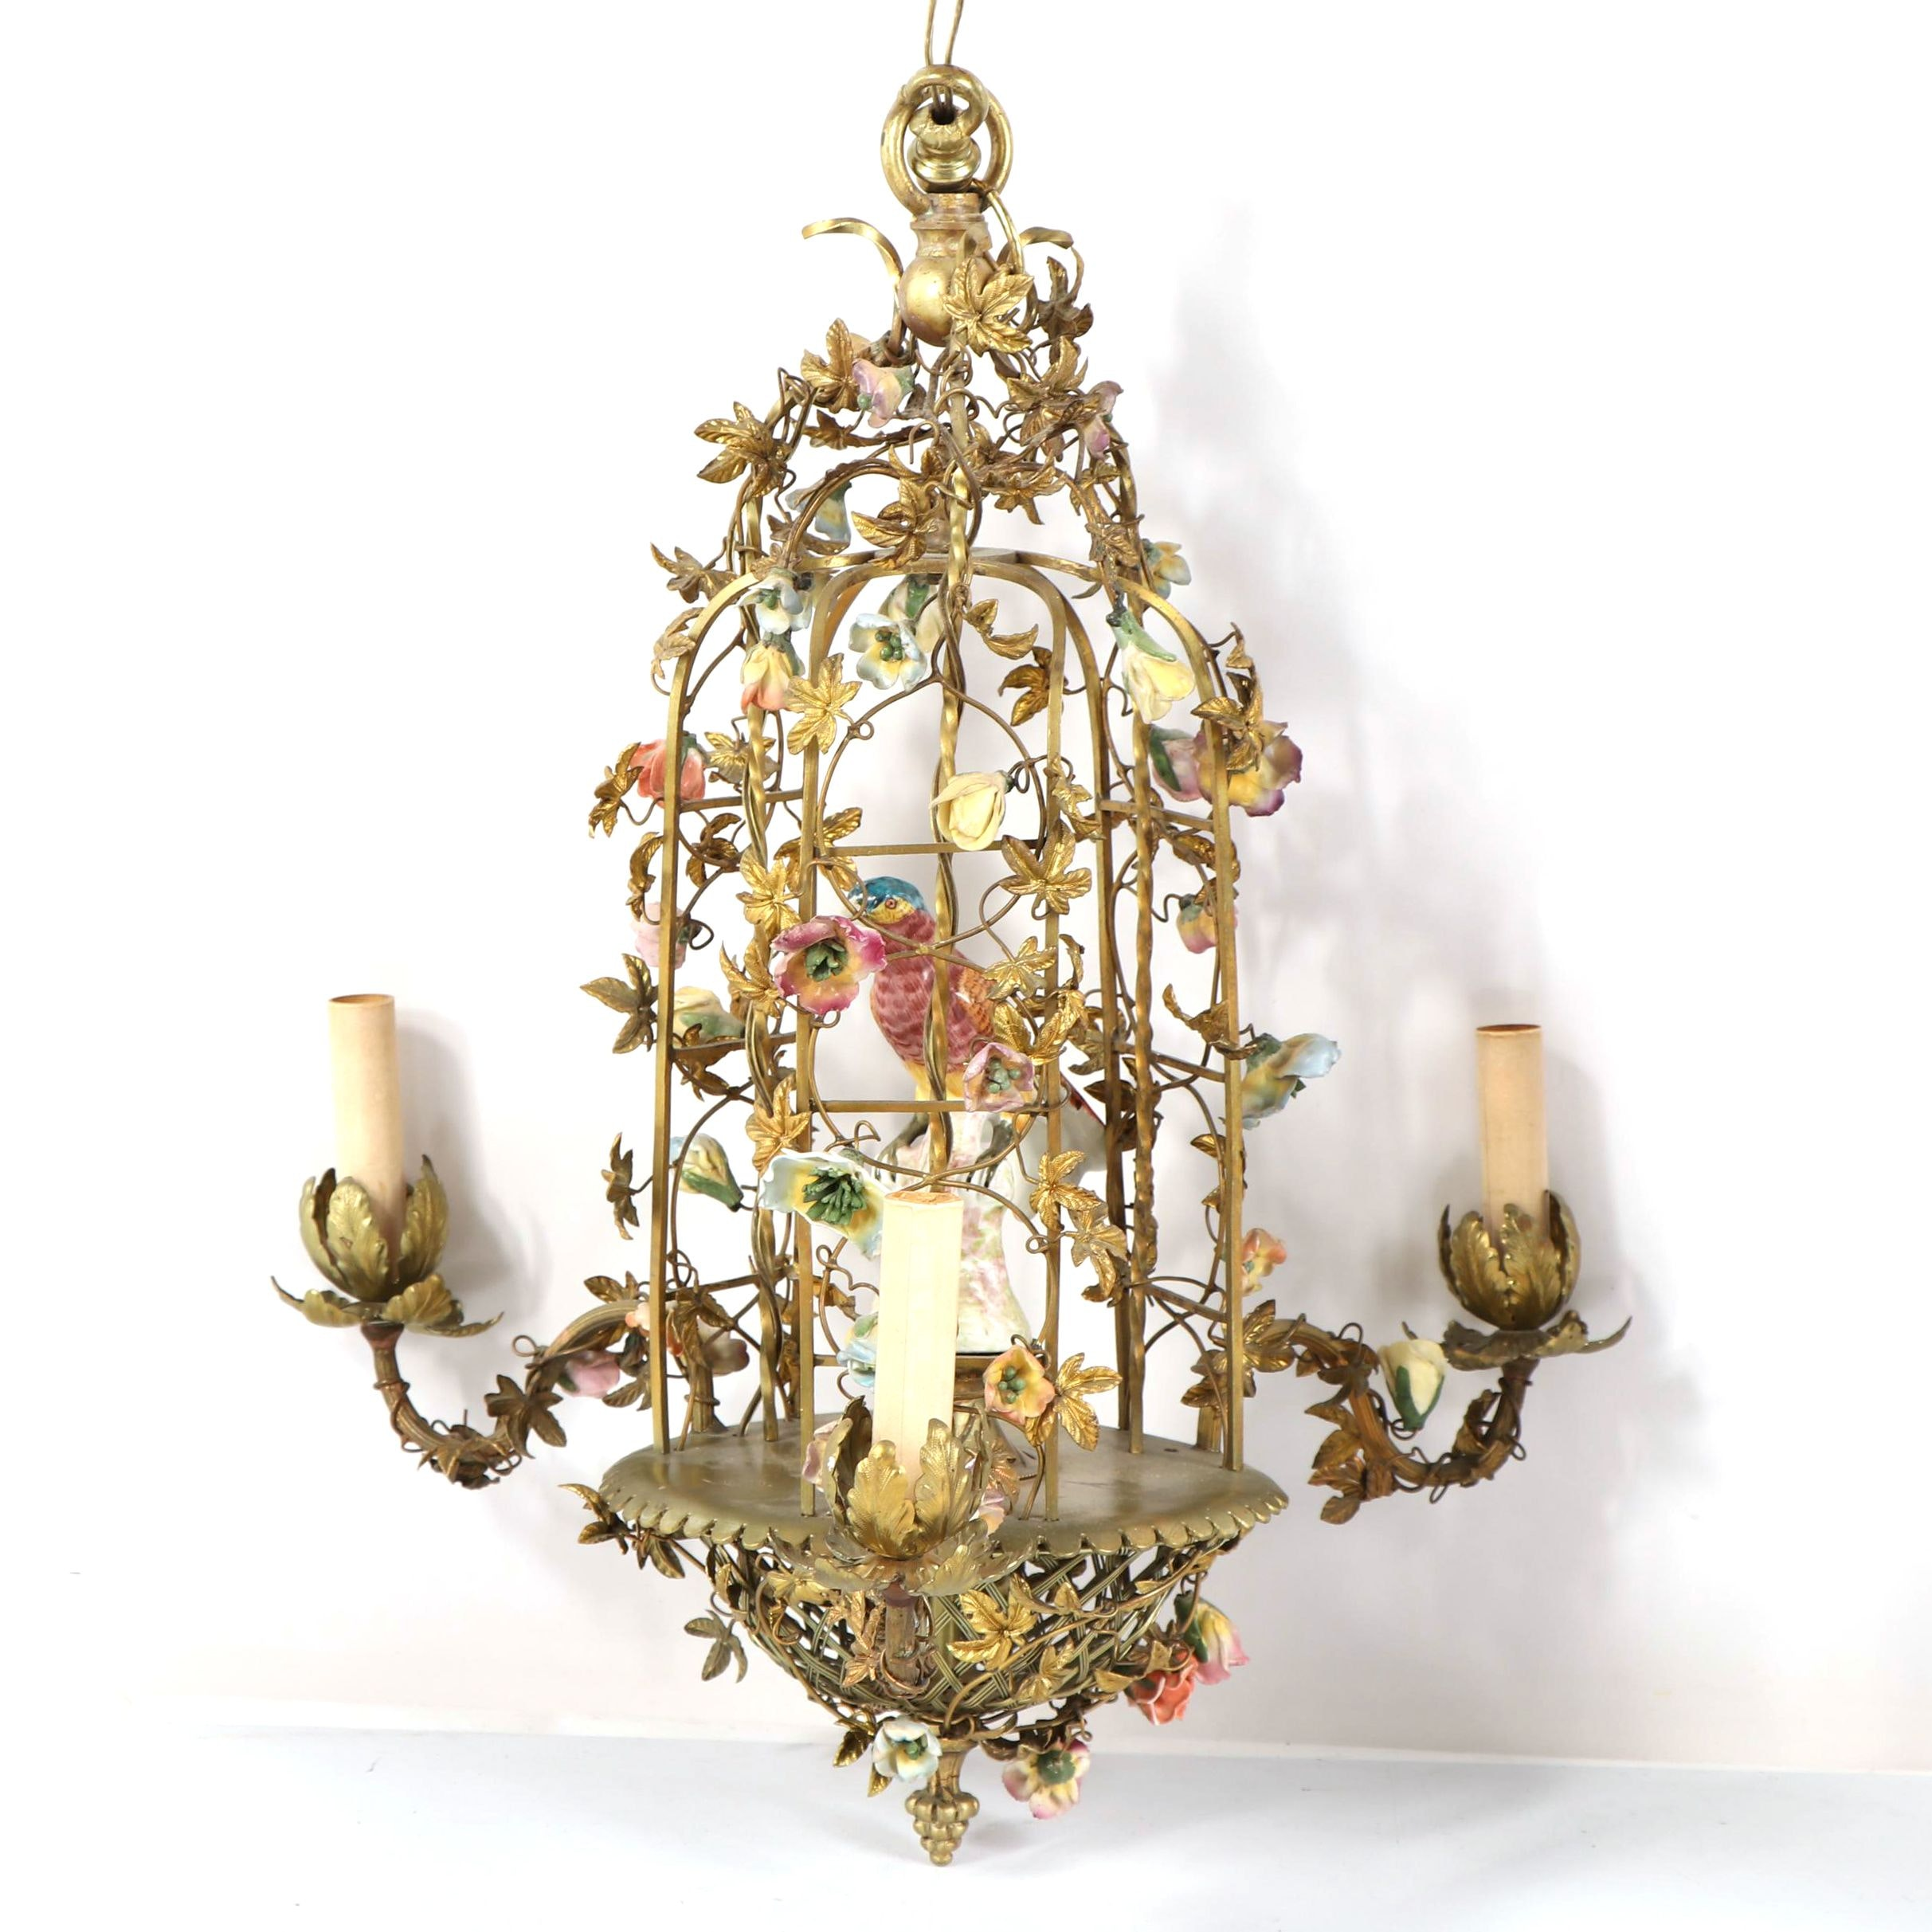 Antique French Ormolu Birdcage Chandelier with Porcelain Bird and Flowers